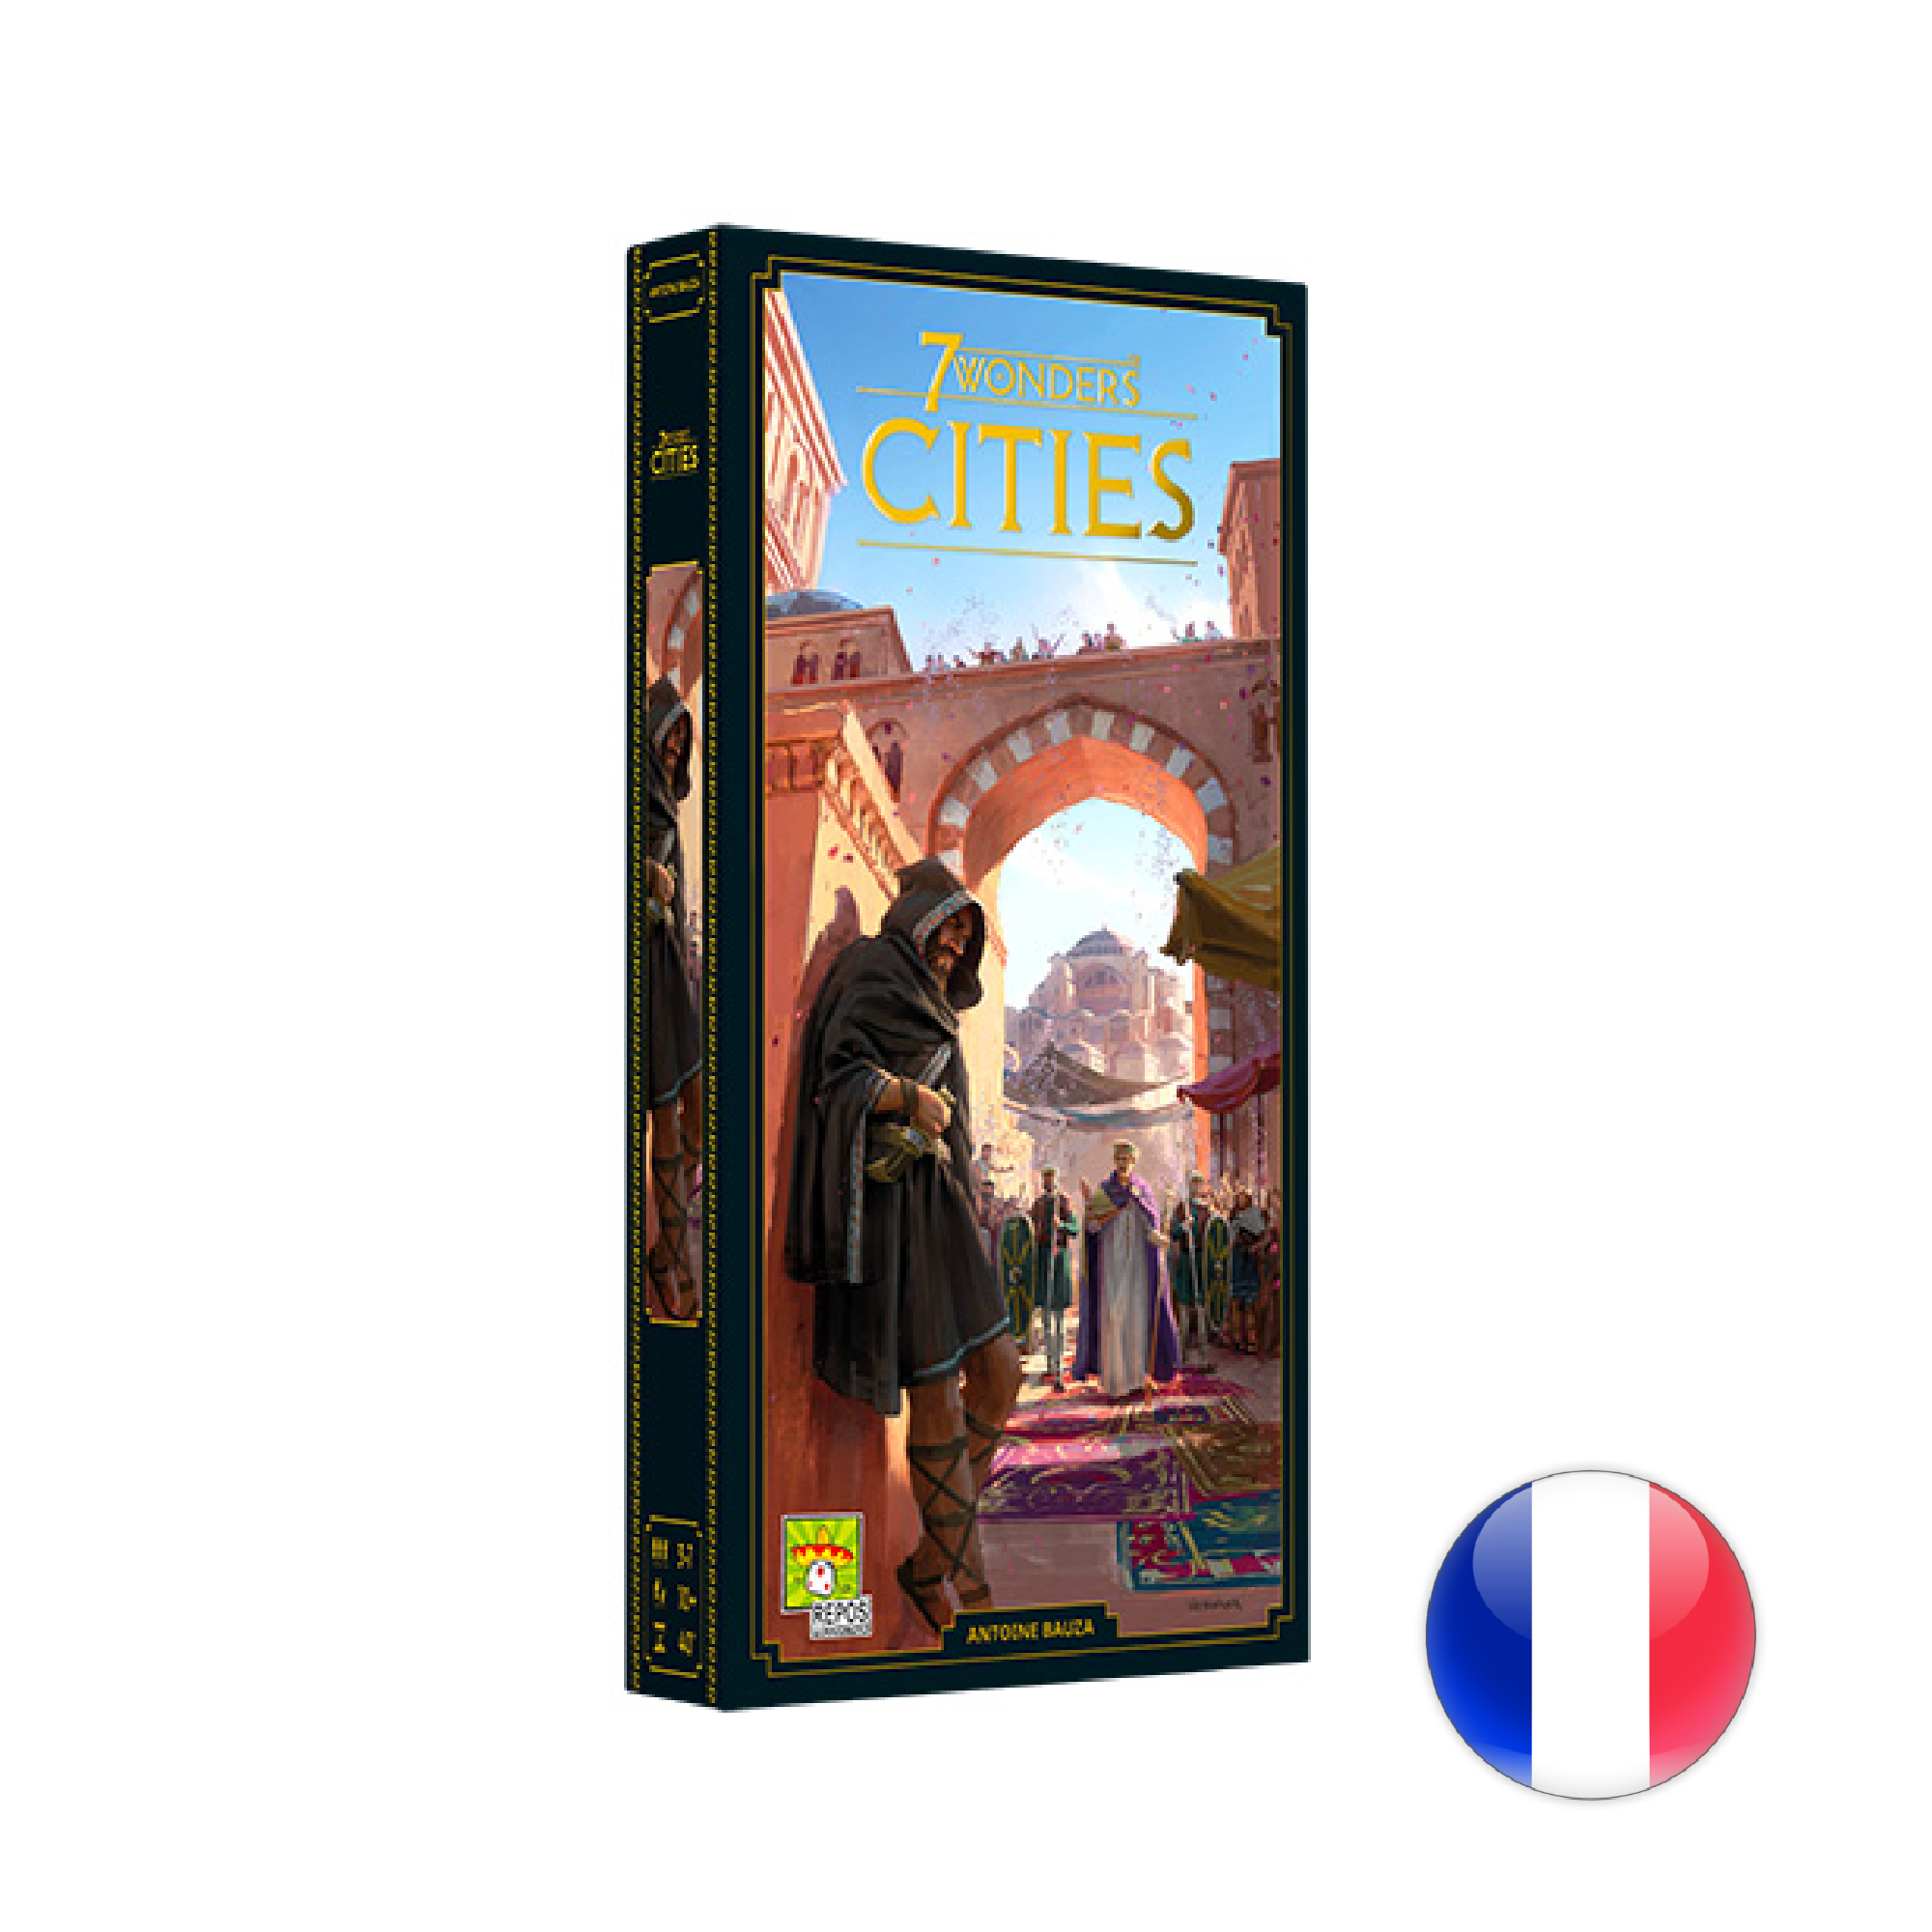 Repos Production 7 Wonders, Nouvelle édition, Cities VF